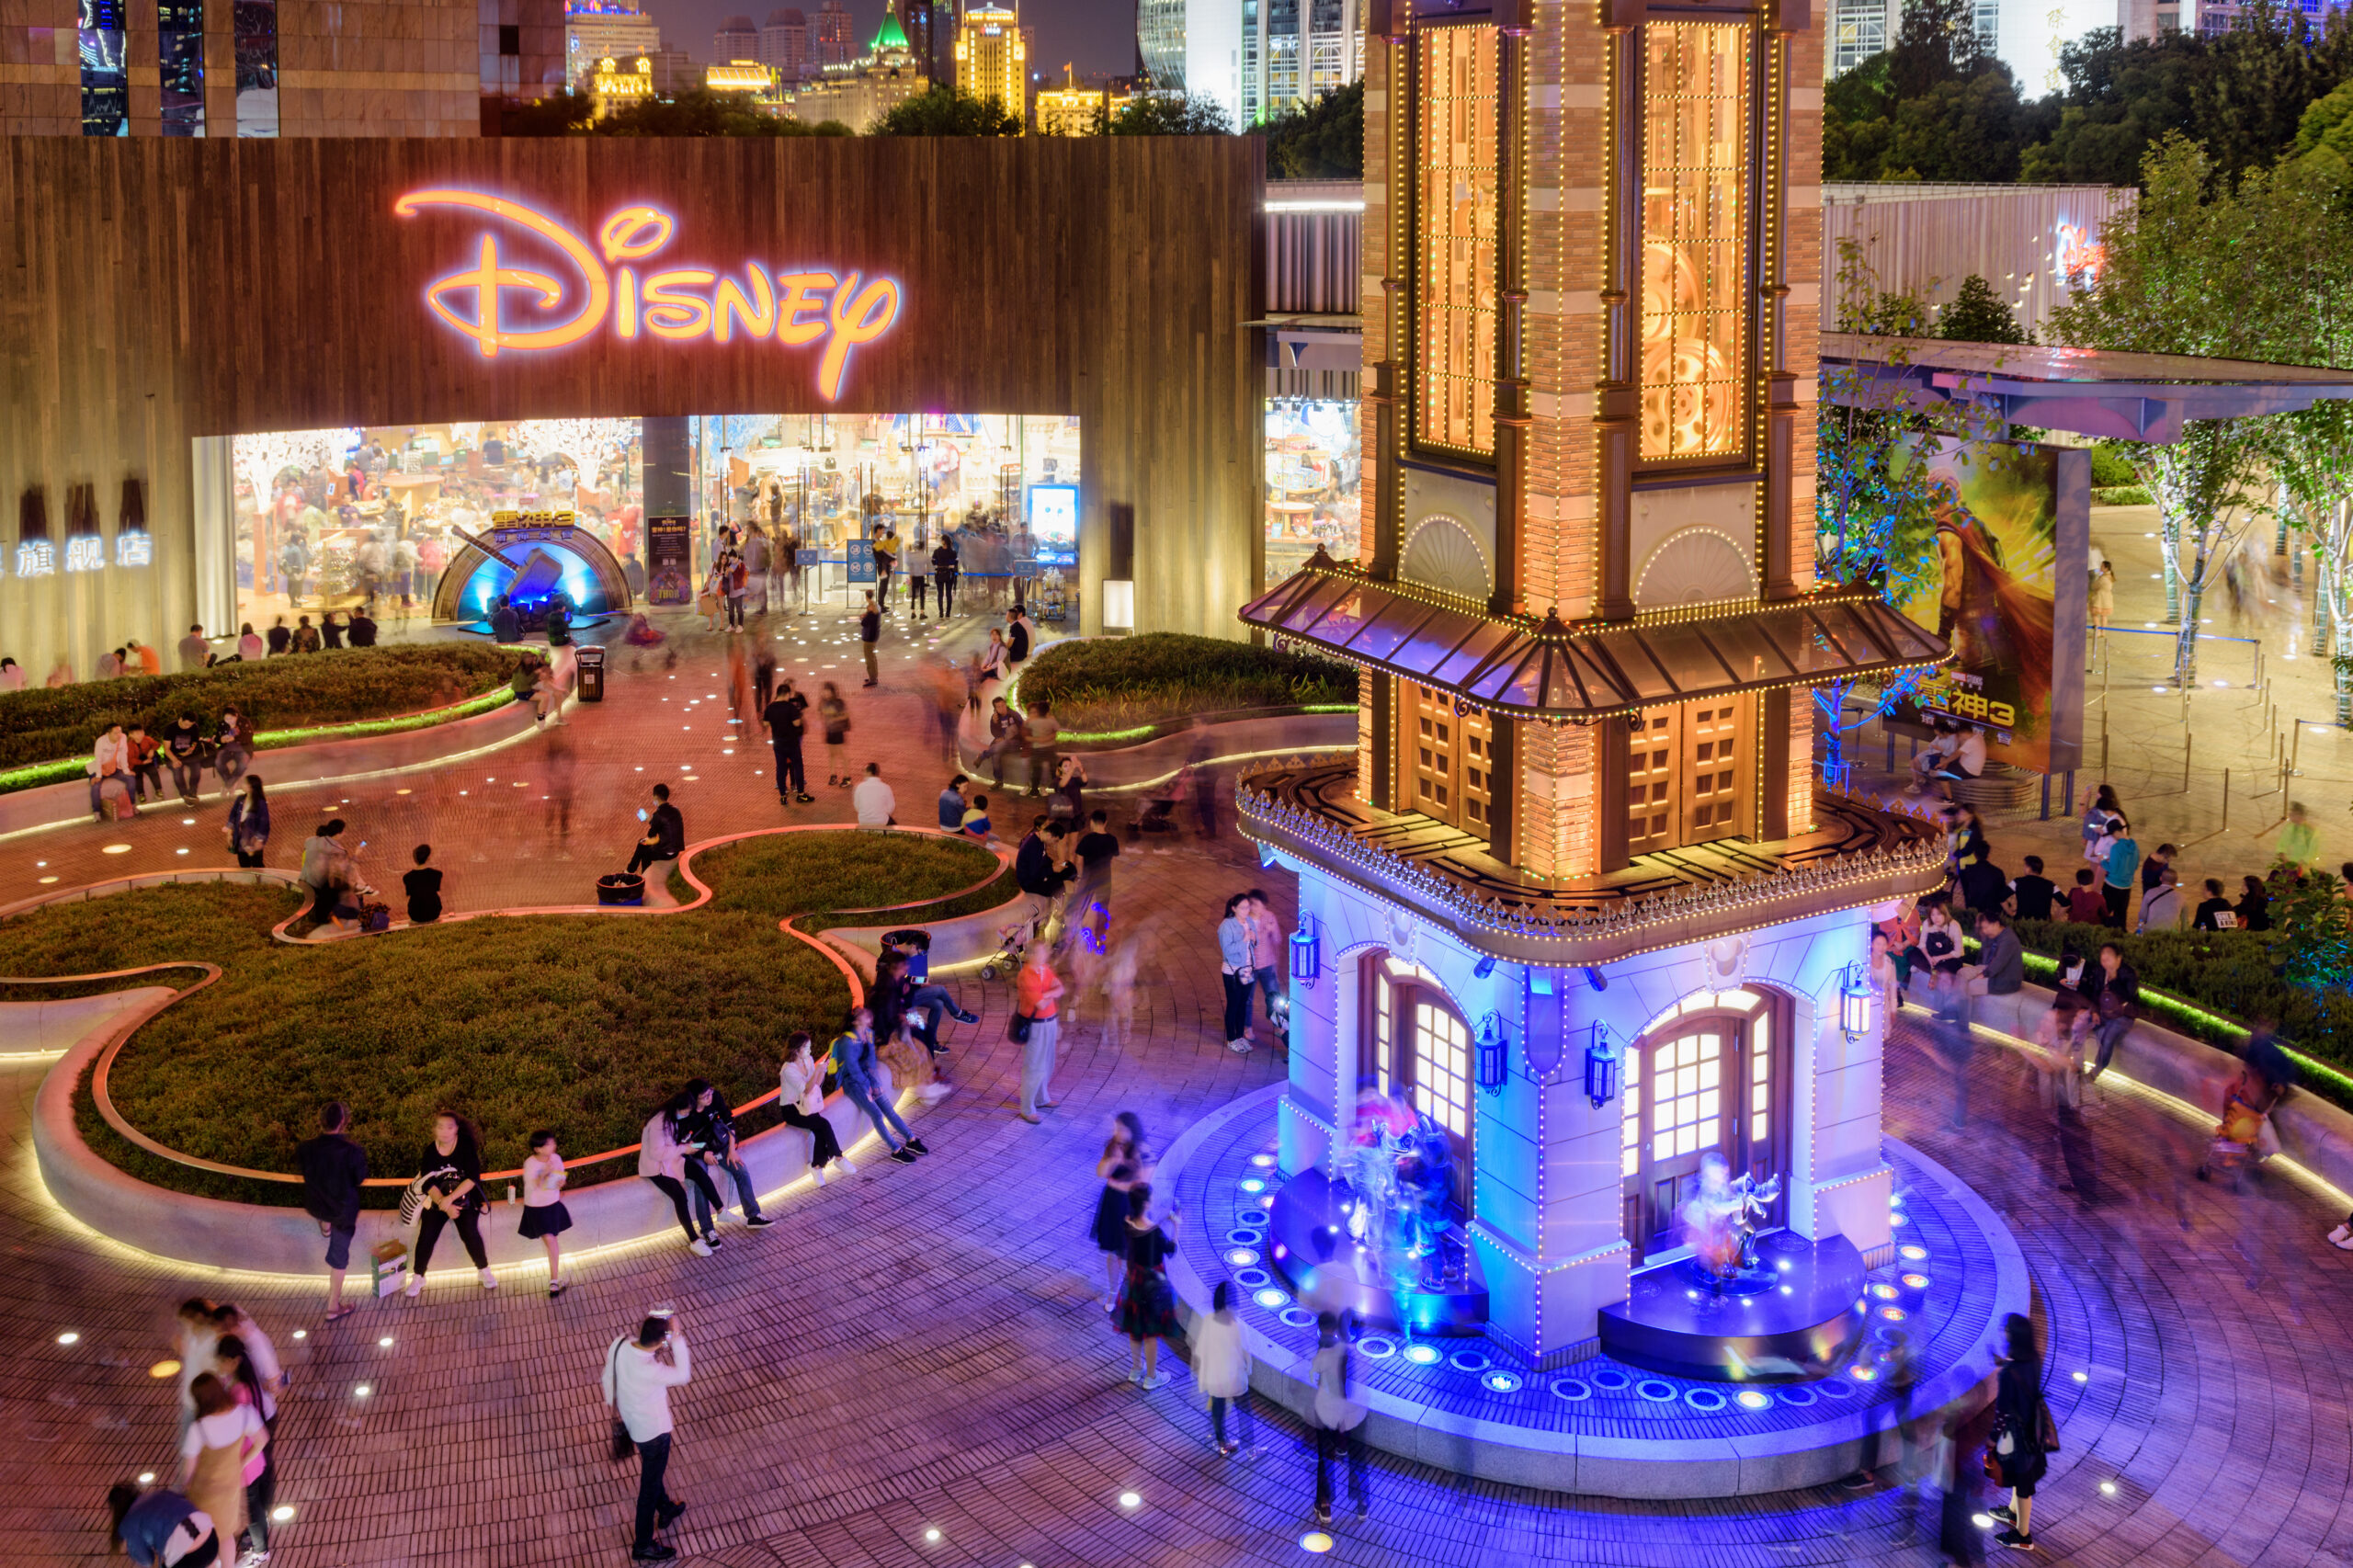 Night view of the Disney Flagship Store at the Pudong New District (Lujiazui) in downtown. Shanghai is a popular tourist destination of Asia.